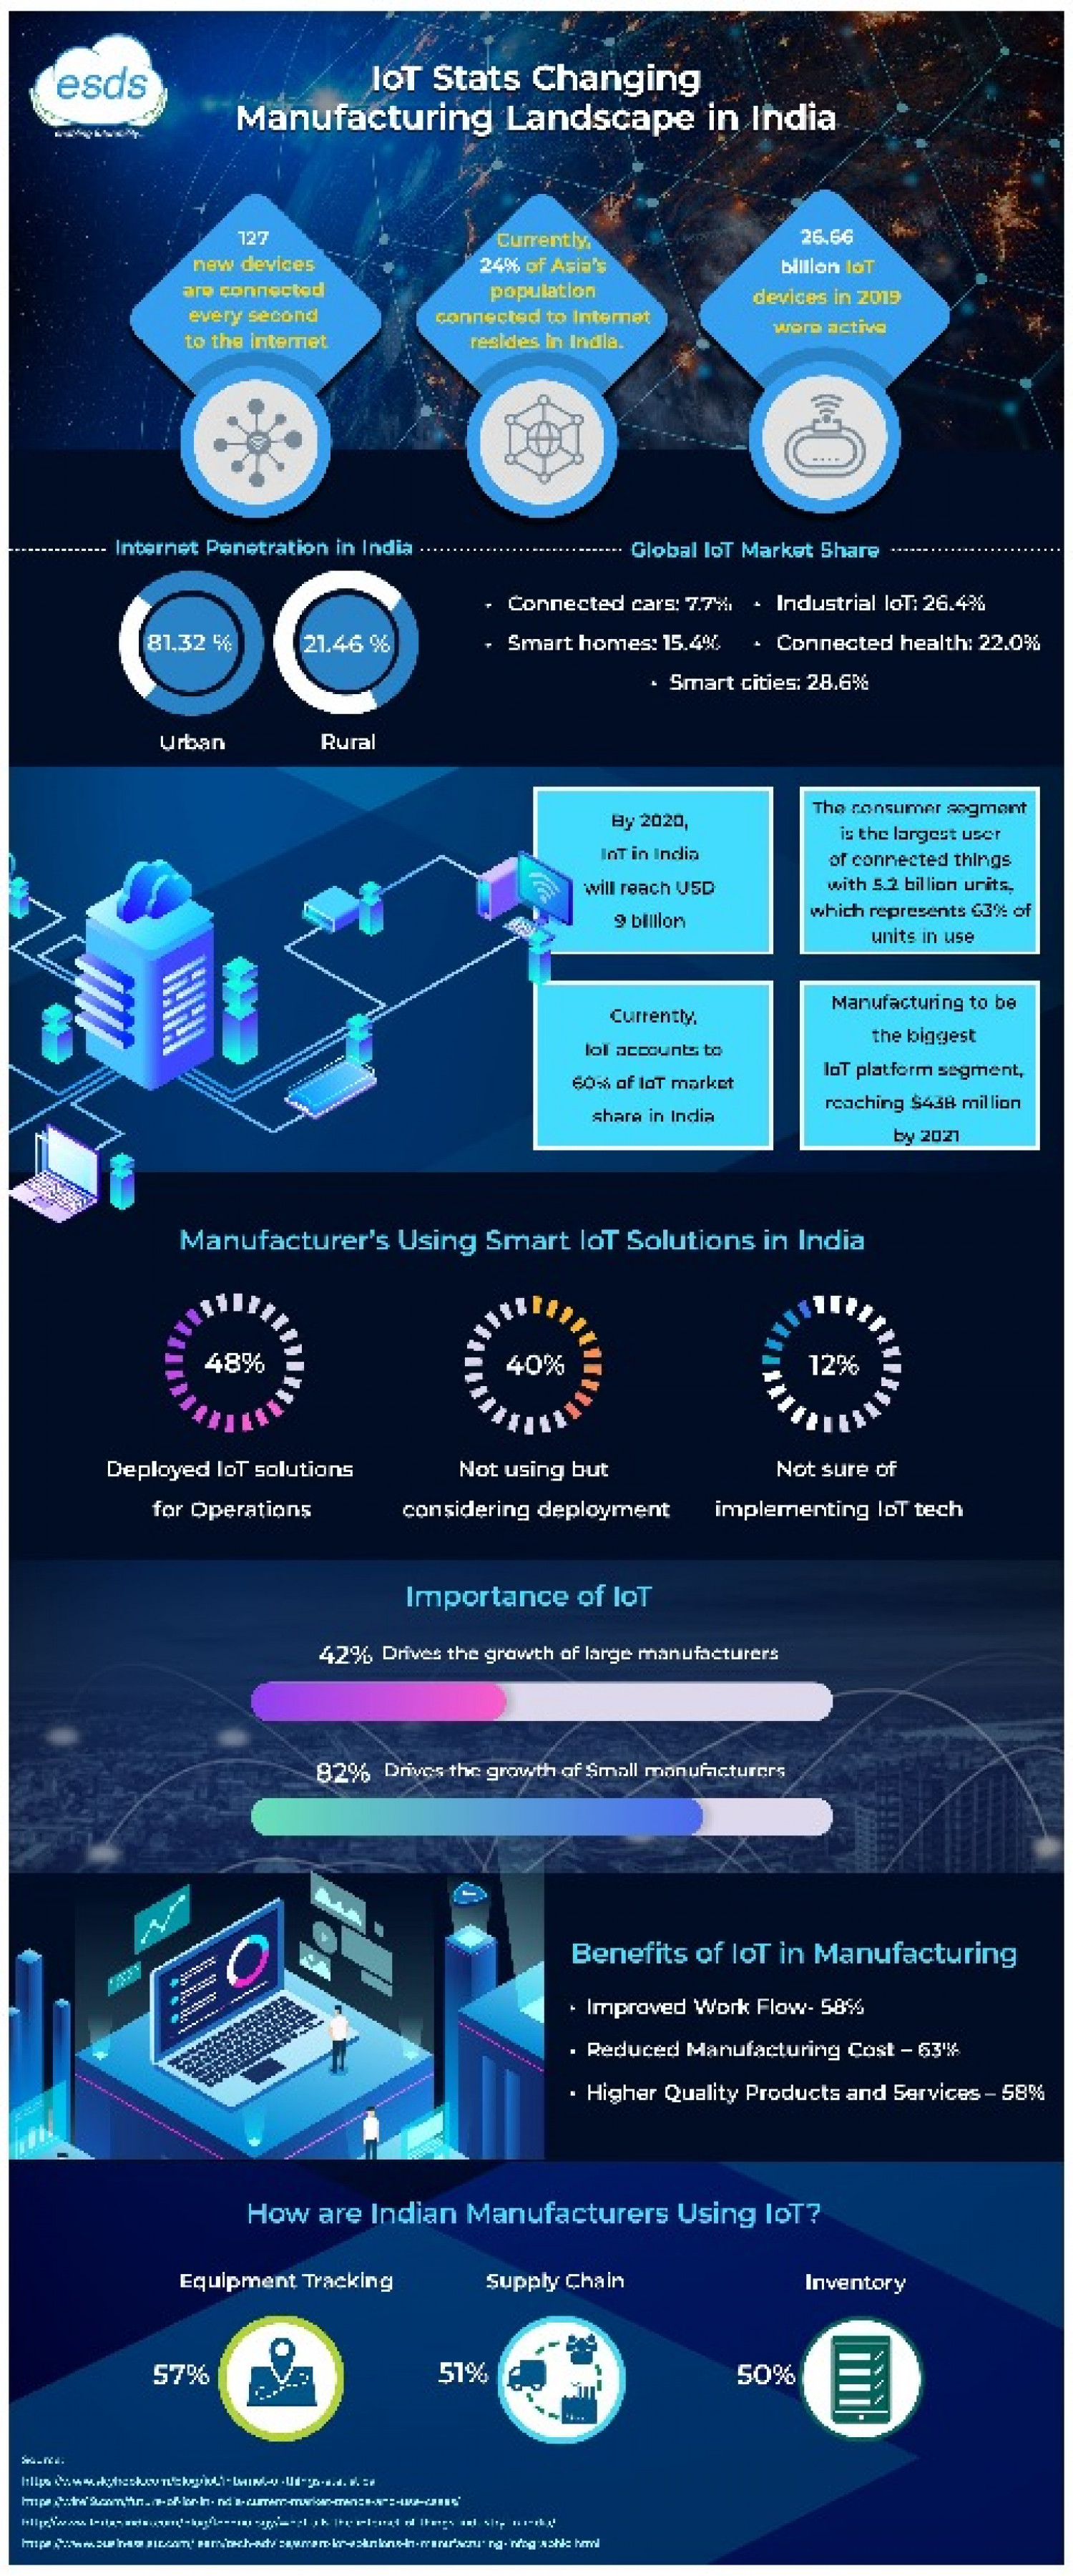 IoT Stats Changing Manufacturing Landscape in India Infographic